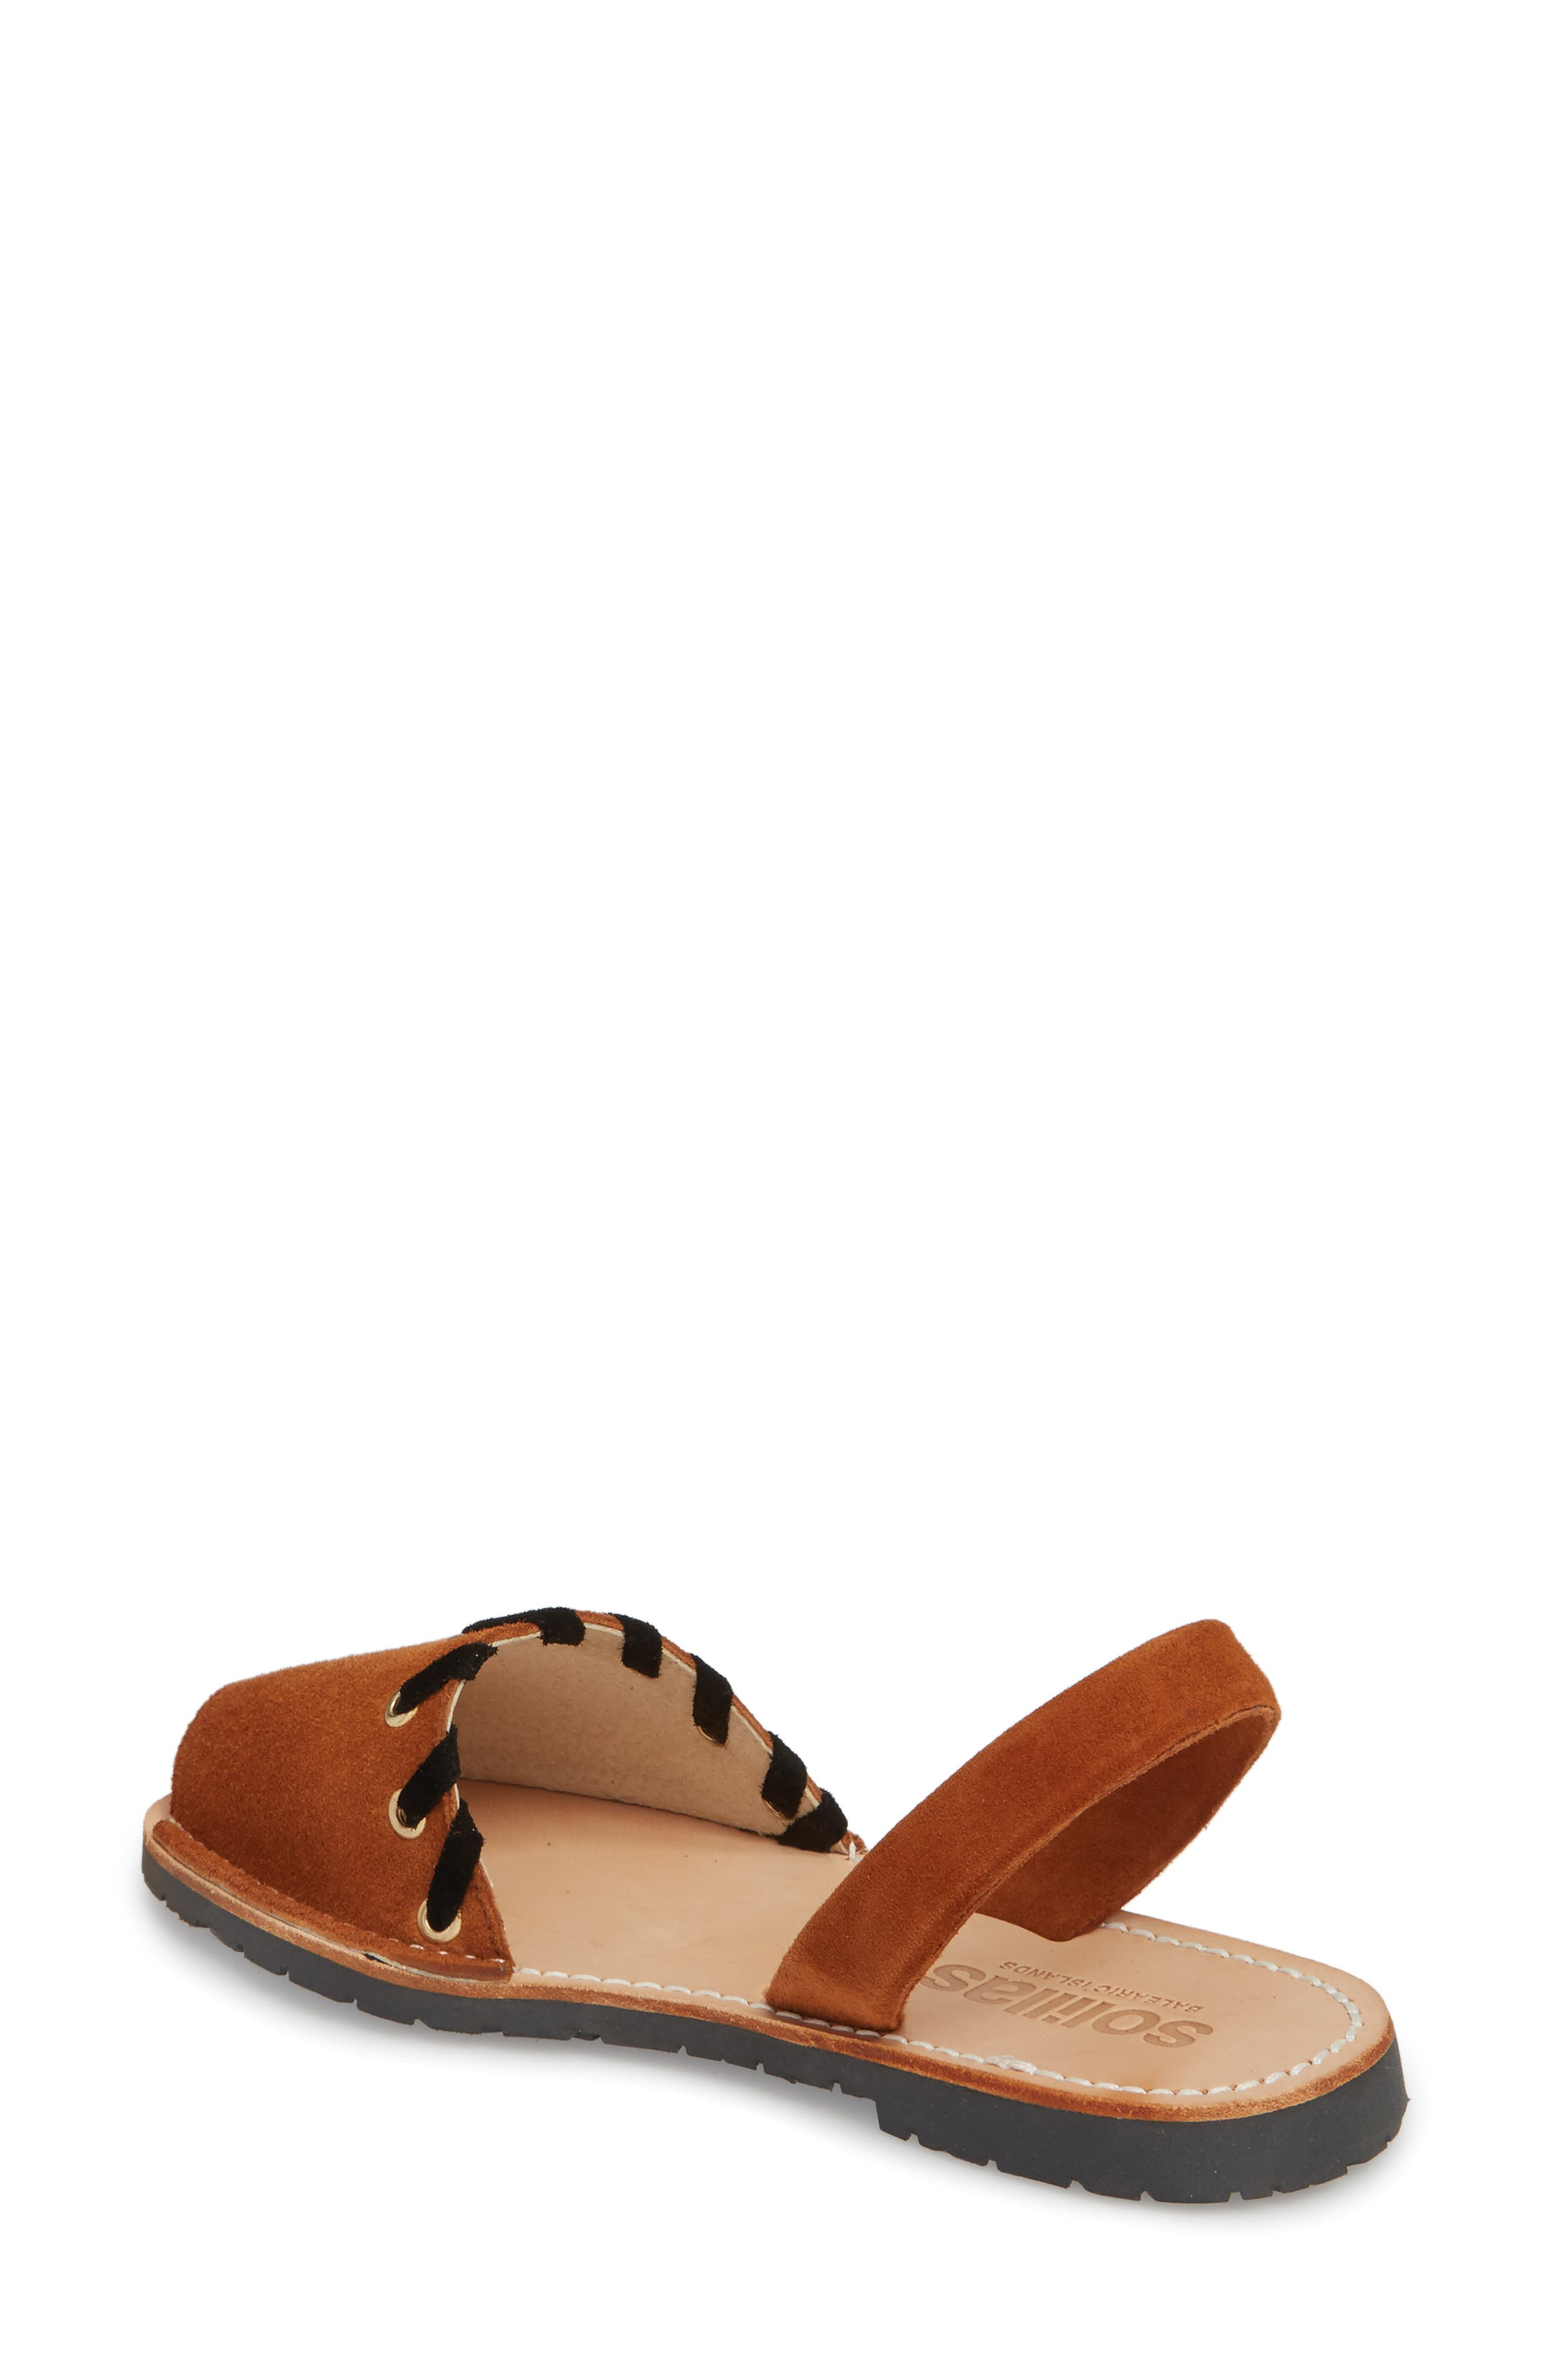 Whipstitched Flat Sandal,                             Alternate thumbnail 4, color,